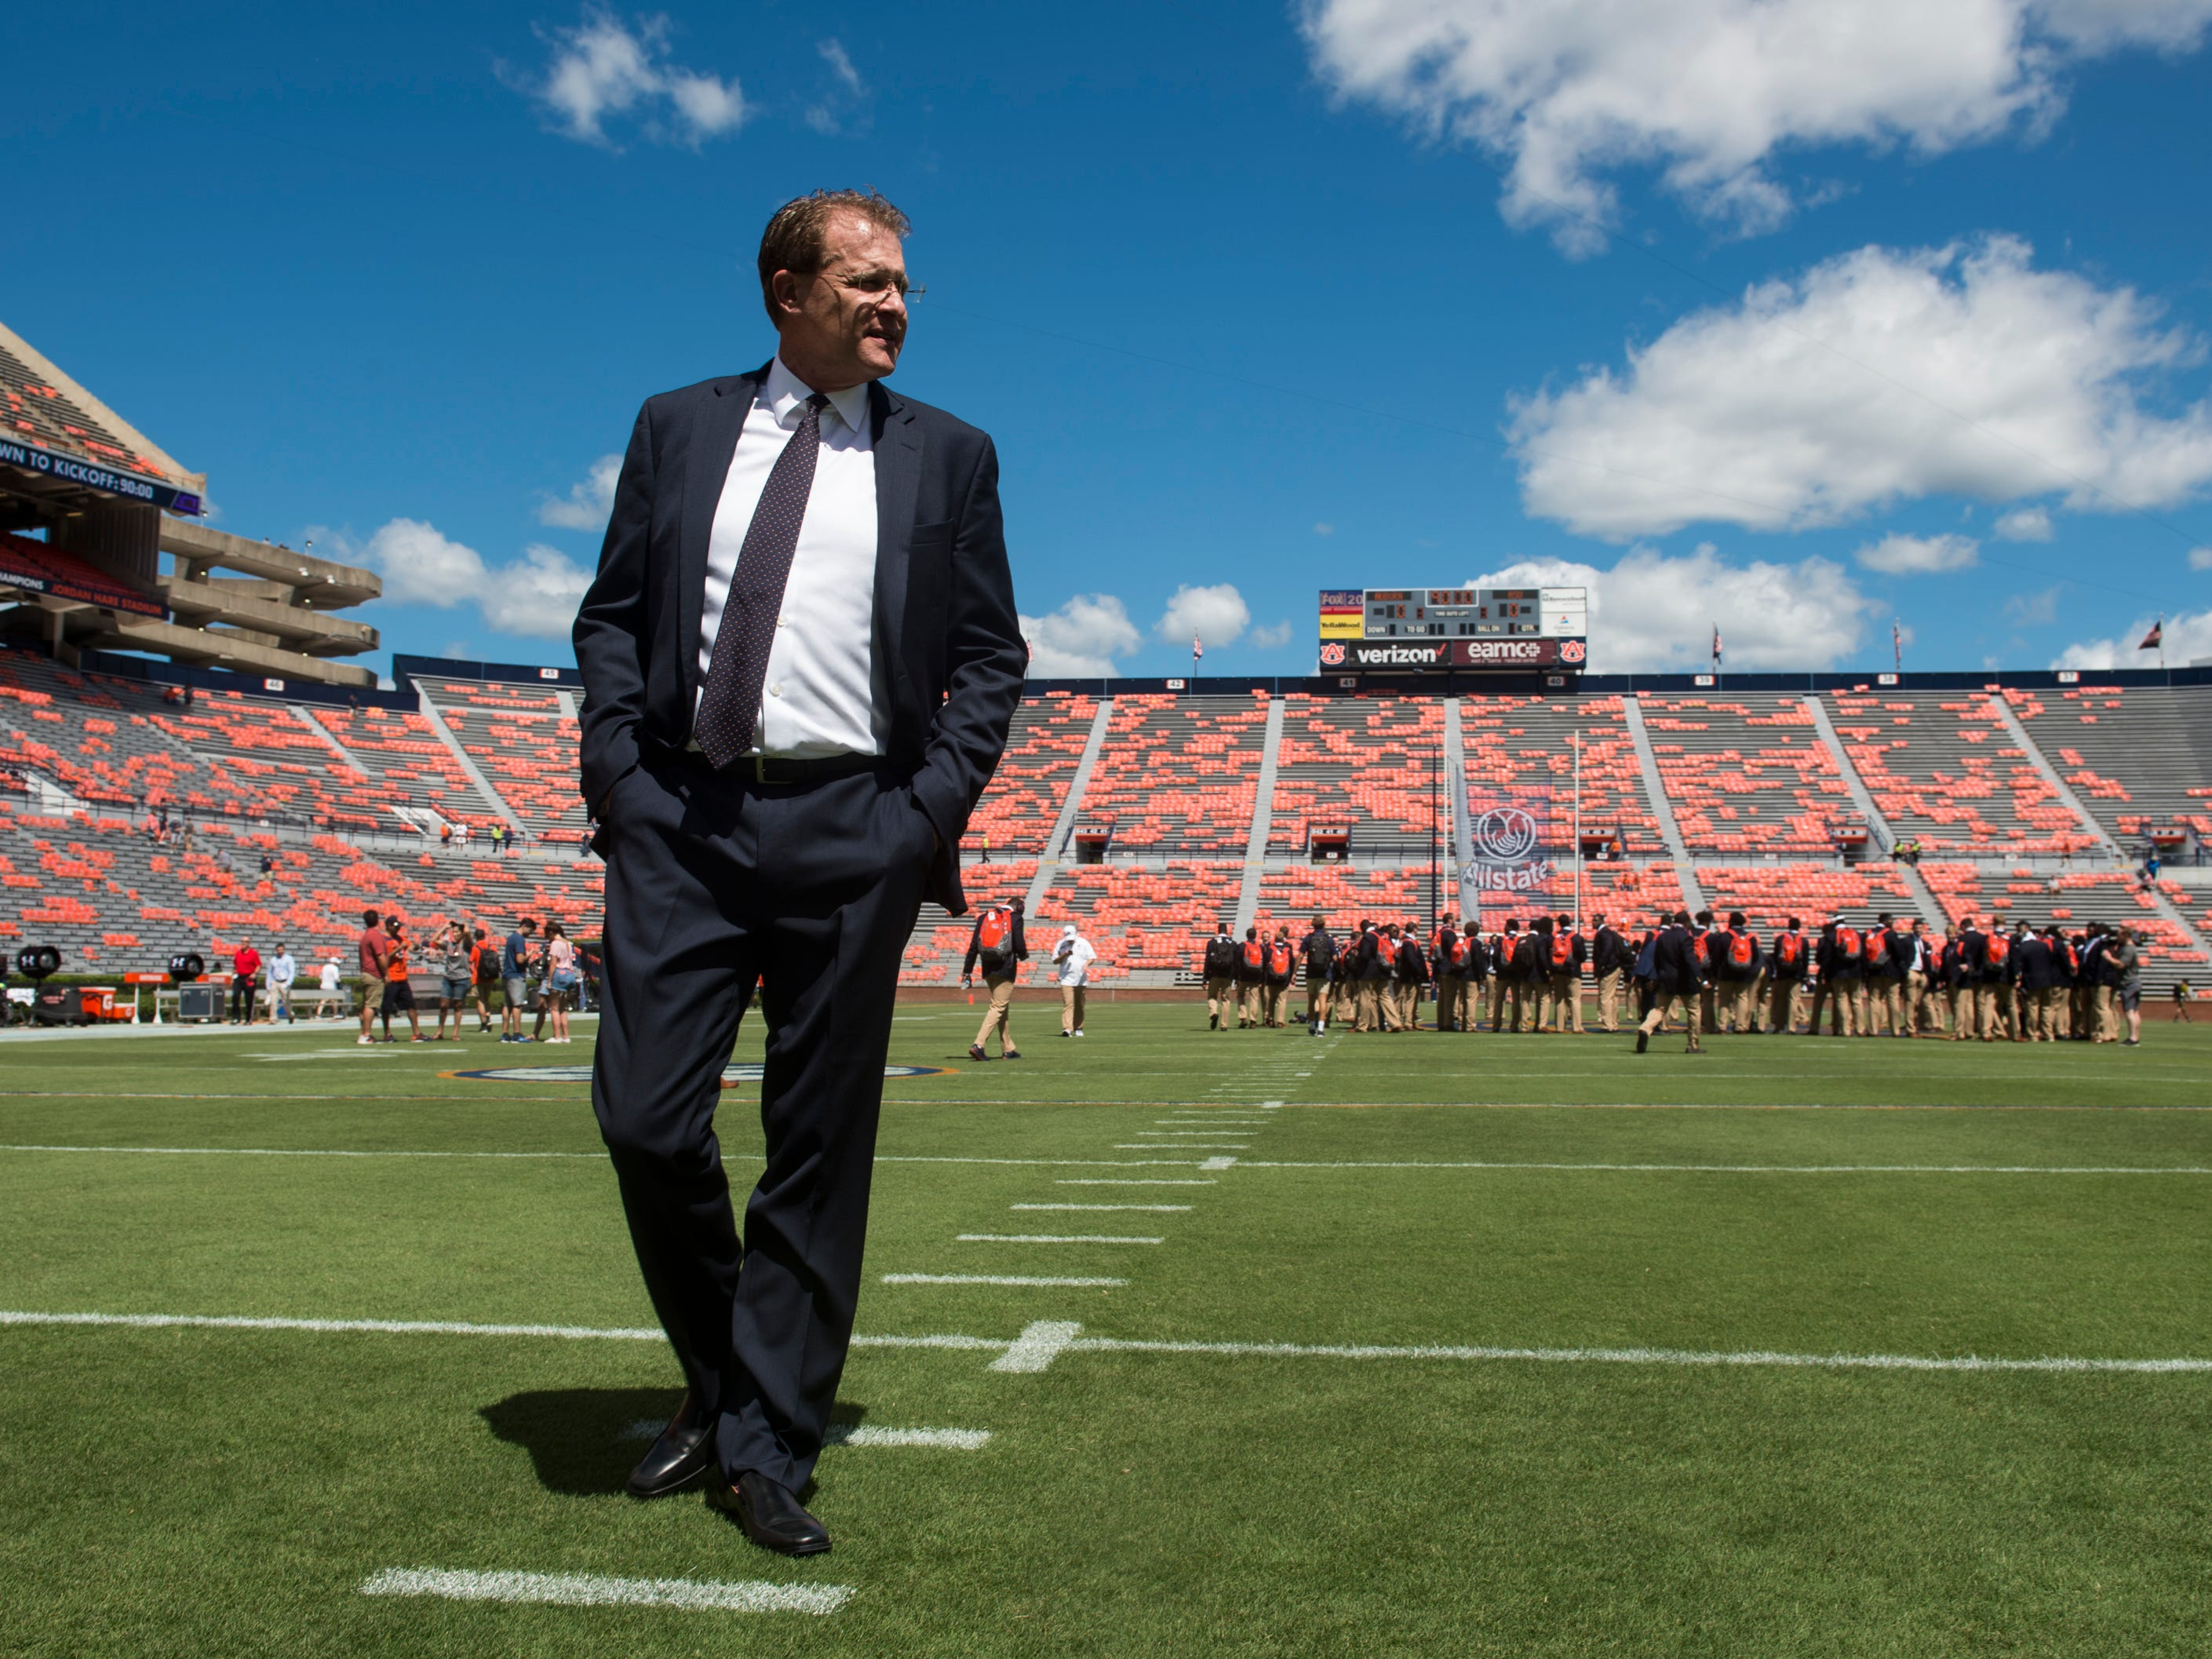 Auburn head coach Gus Malzahn takes the field with his team after the Tiger Walk at Jordan-Hare Stadium in Auburn, Ala., on Saturday, Sept. 15, 2018.